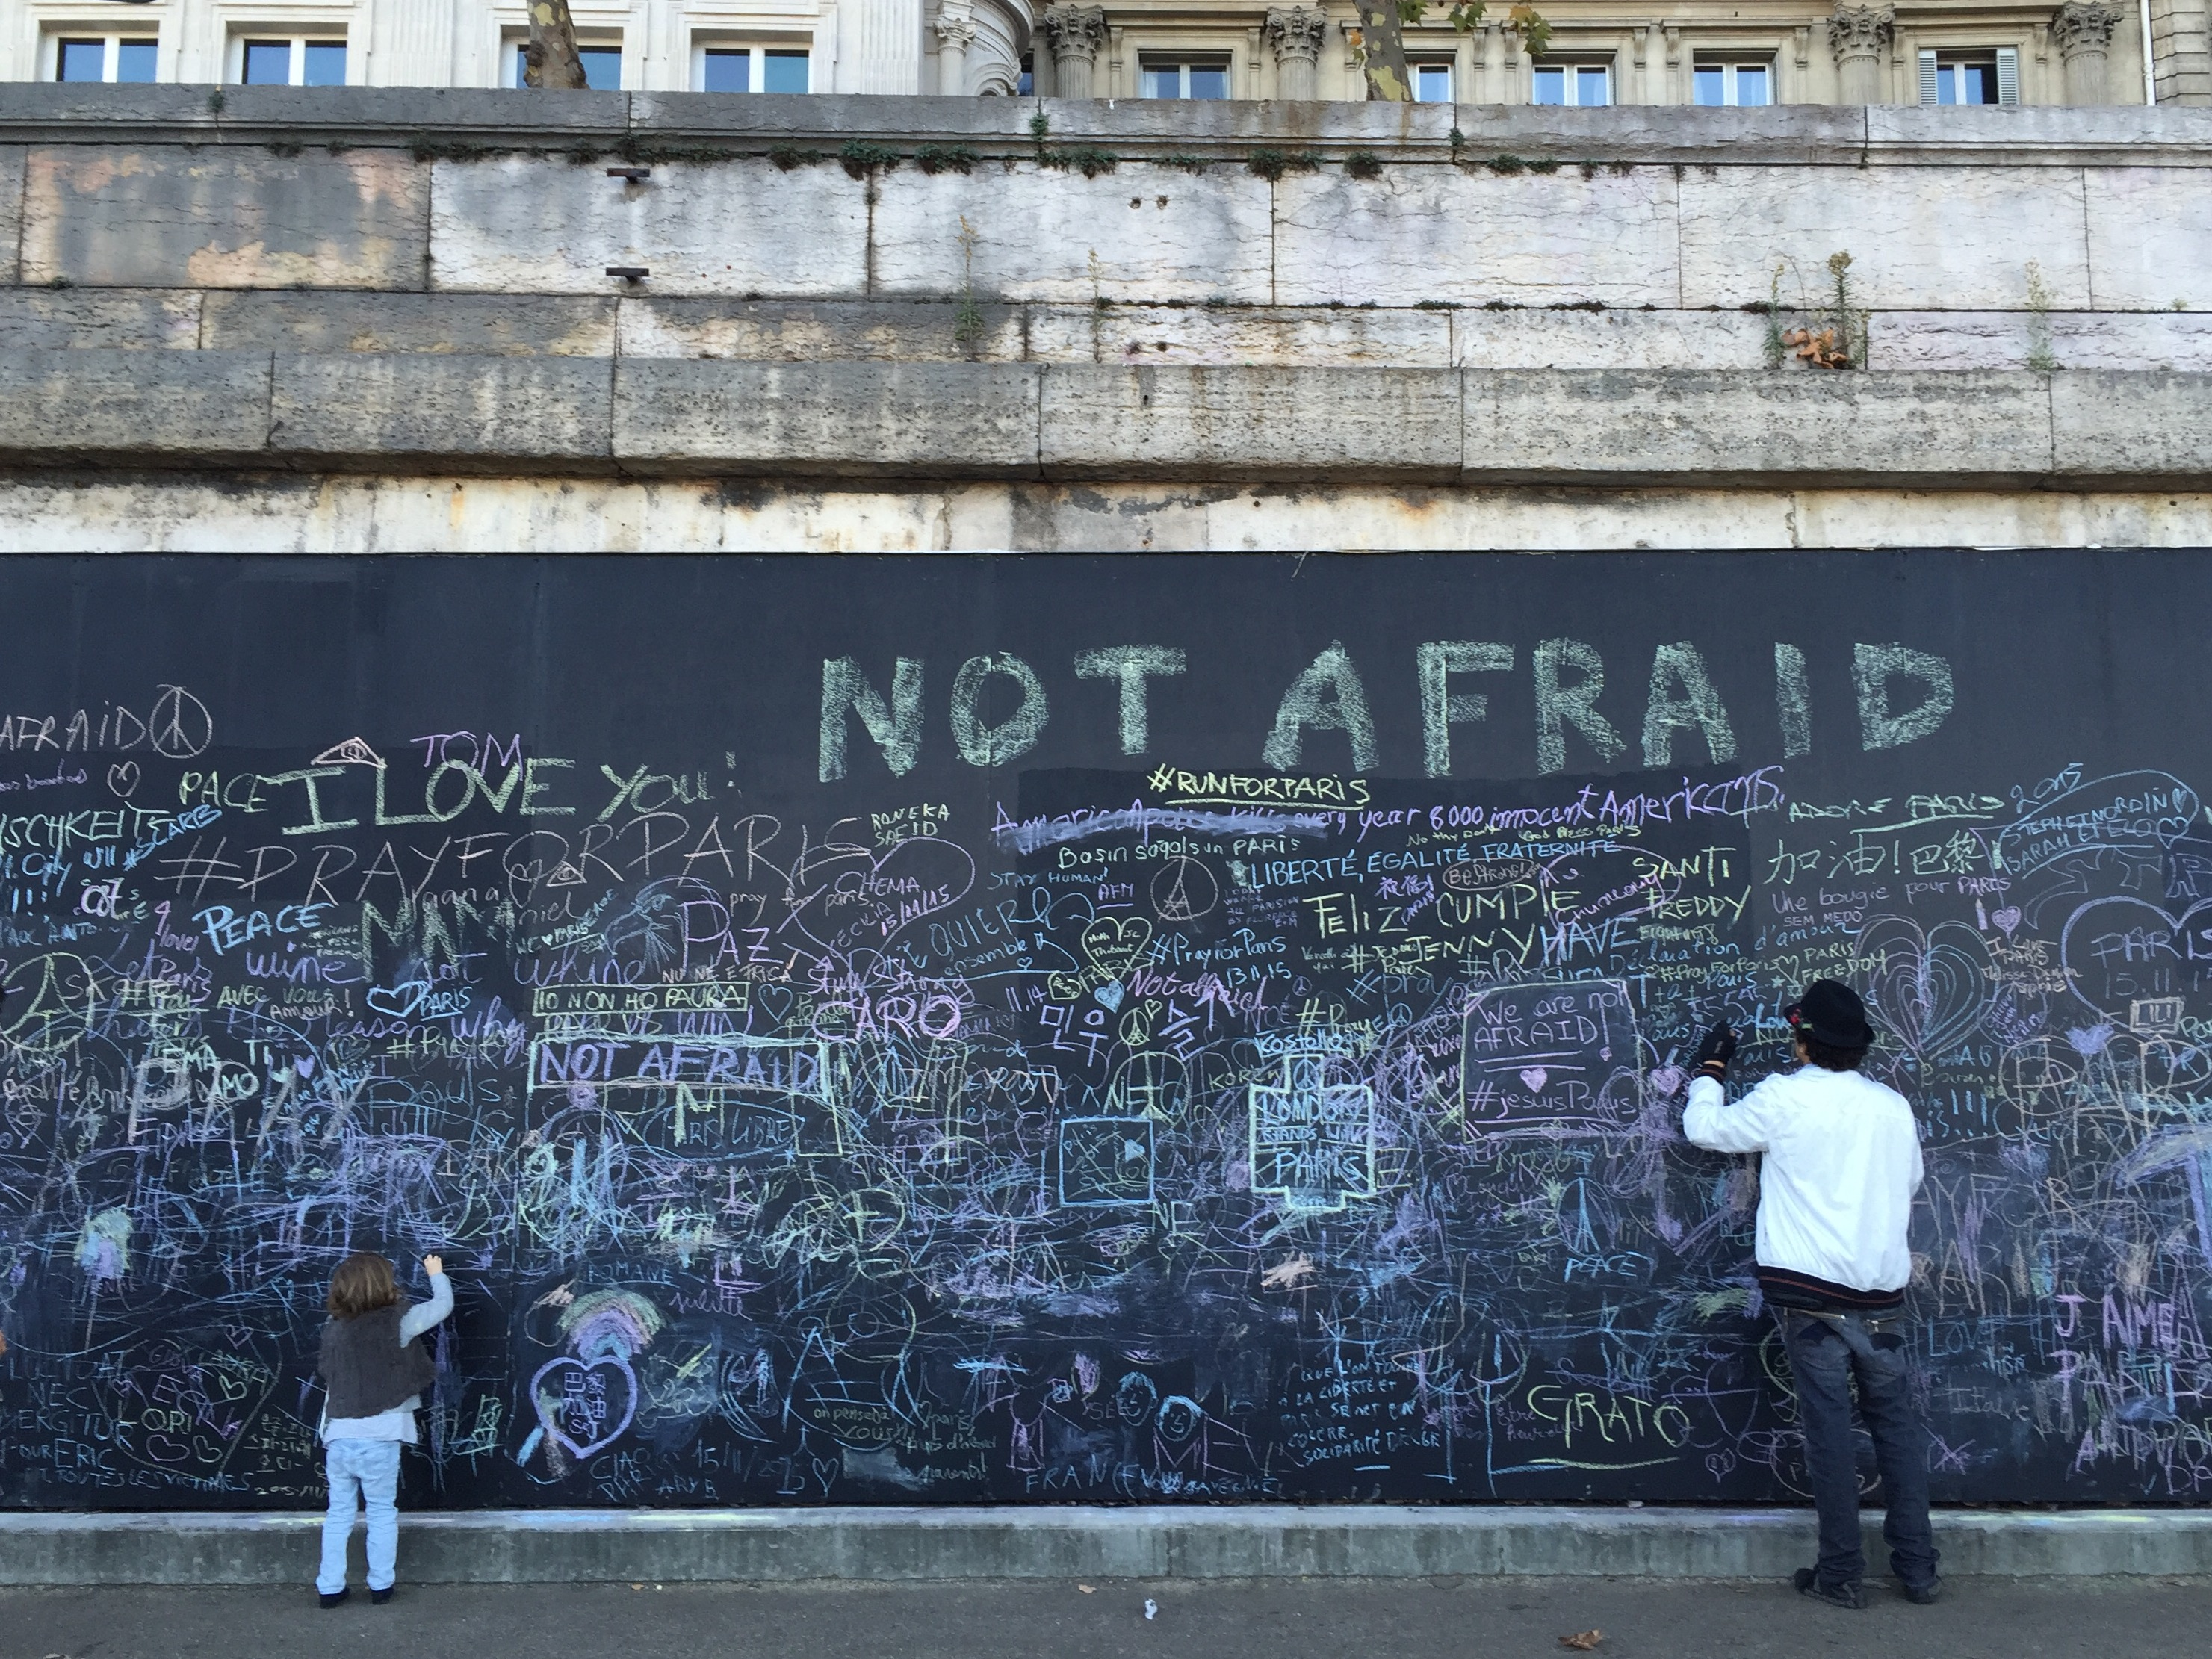 Paris after the attacks. Not Afraid. Seine river art and commemoration